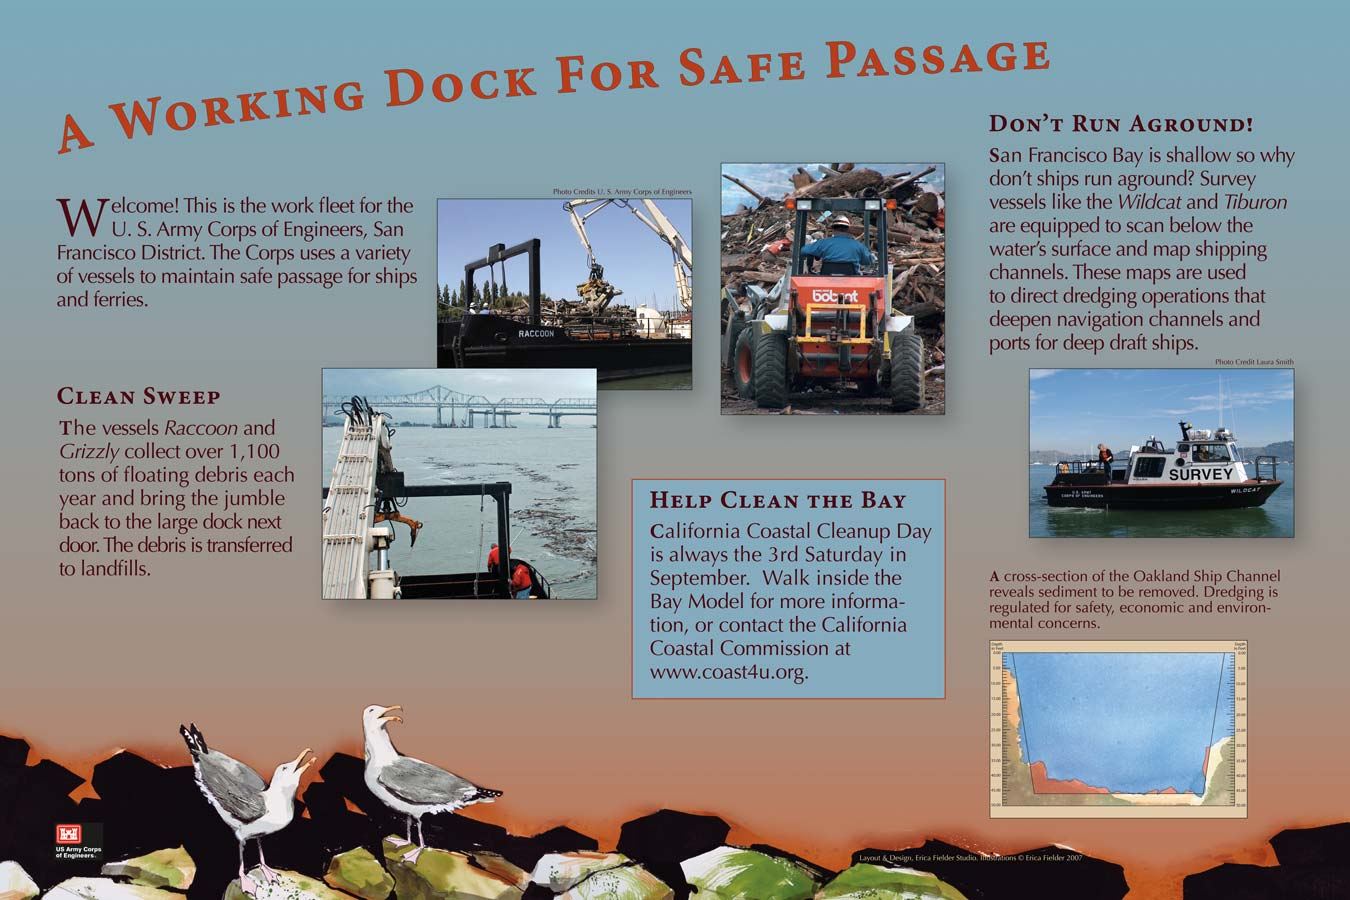 This display depicts the U. S. Army Corps of Engineers, San Francisco District, work fleet. The Corps uses a variety of vessels to maintain safe passage for ships and ferries plying San Francisco Bay waters.